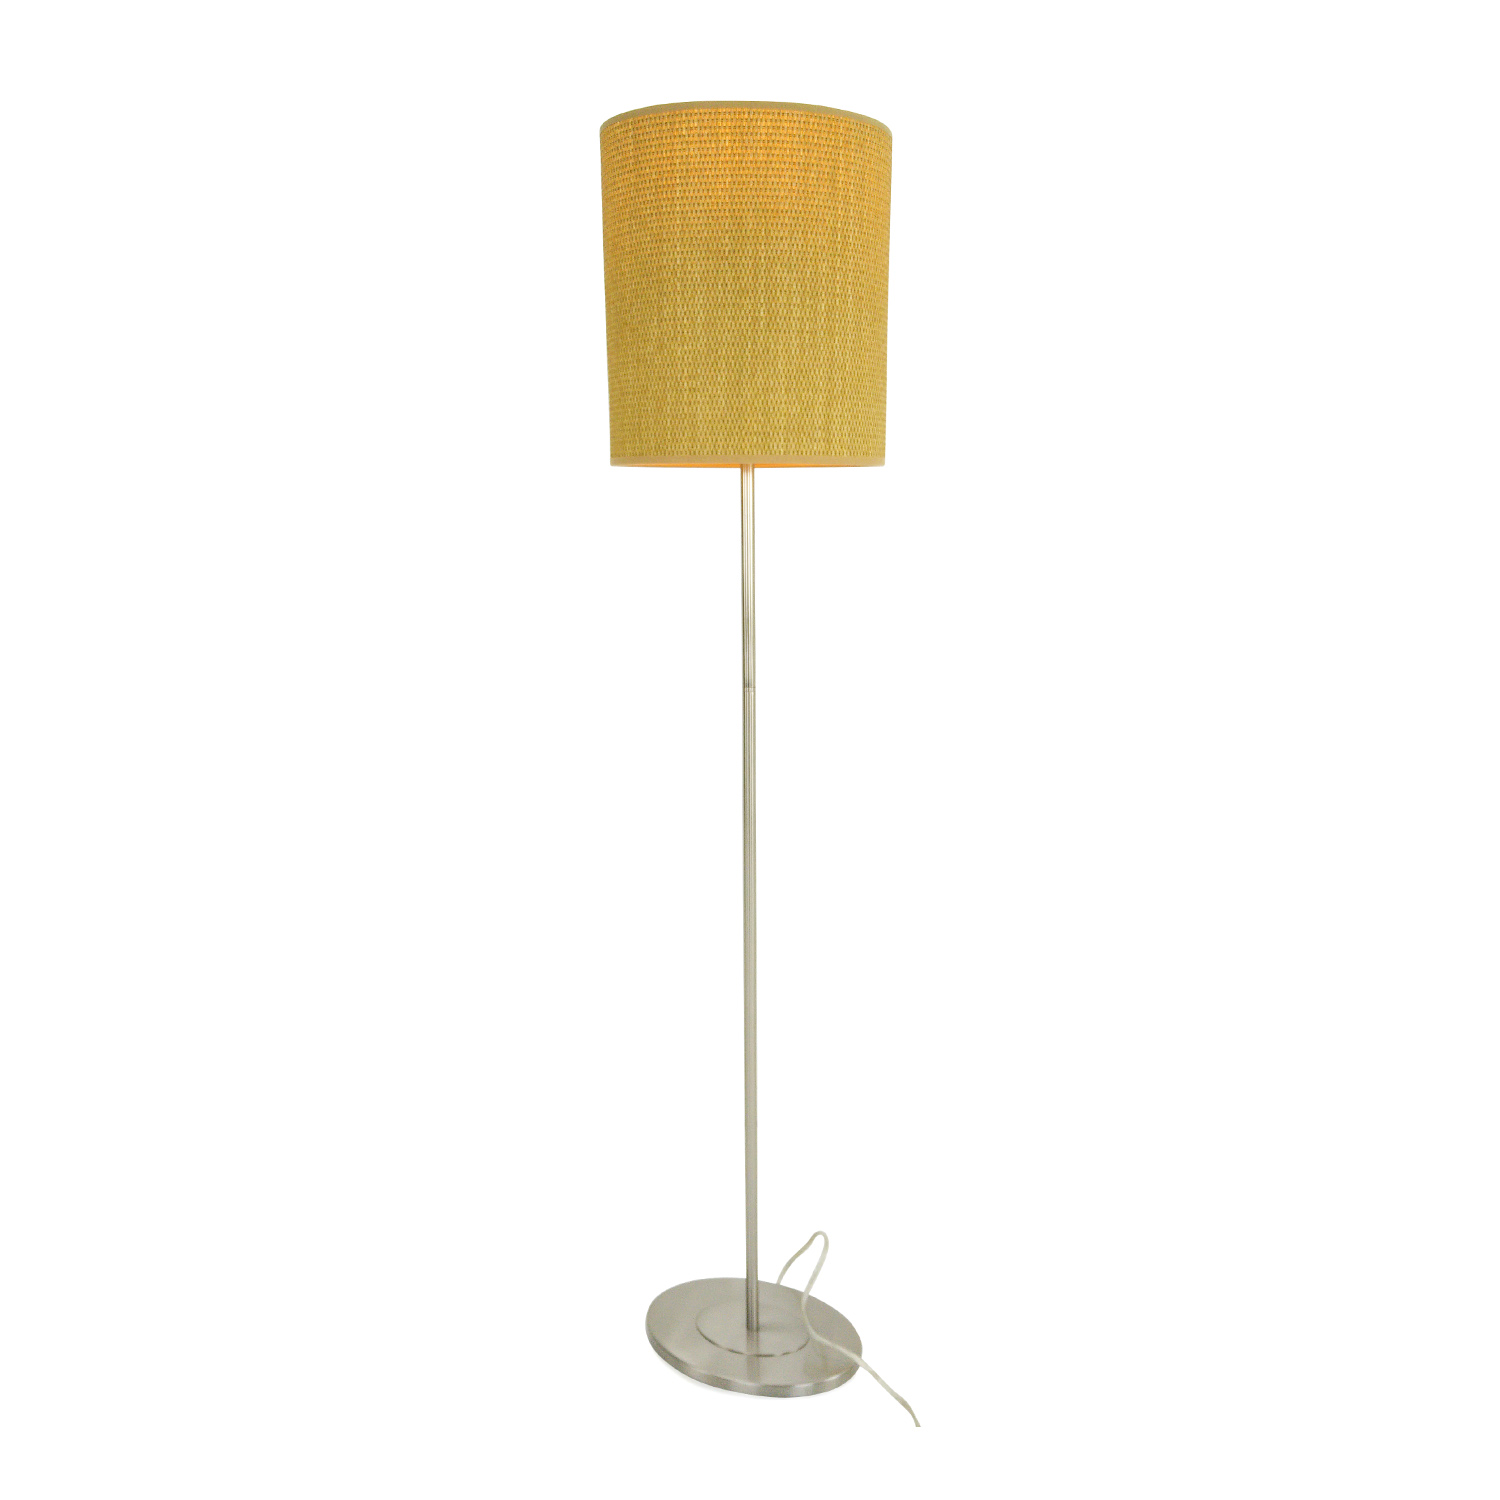 Unknown Brand Tan Floor Lamp used